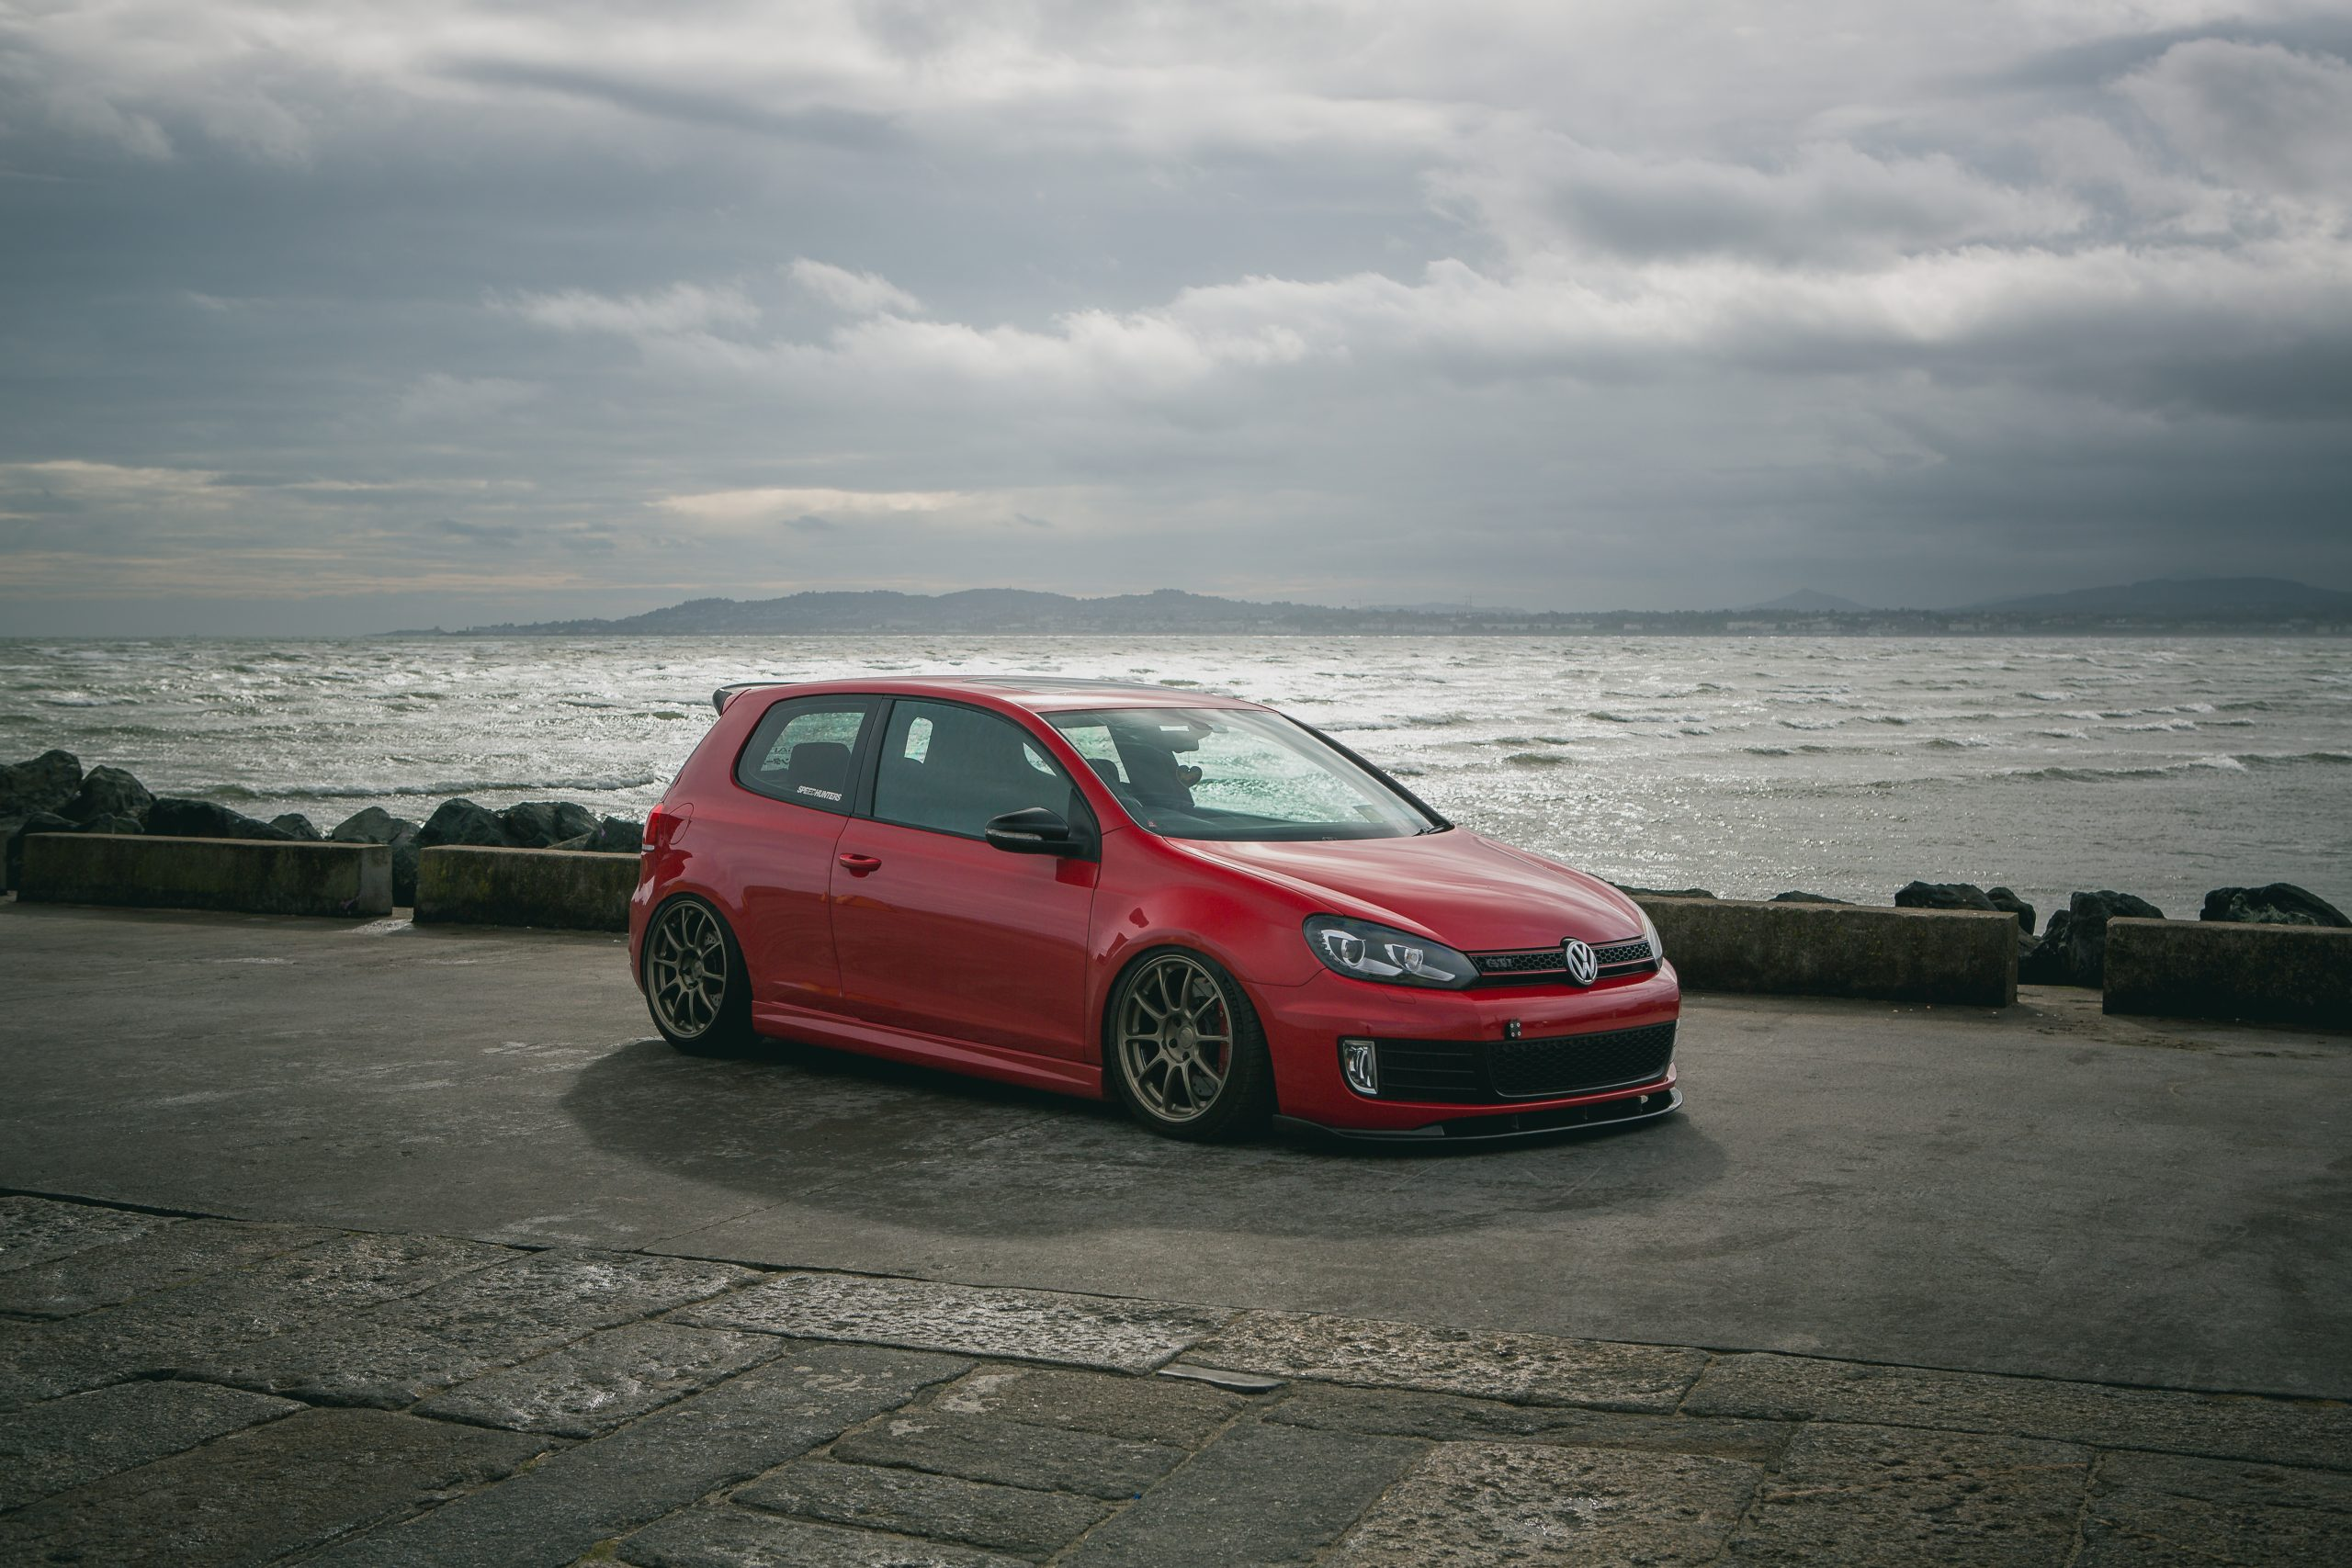 #taroxgenerations – An Illustrious Partnership With The VW Golf GTI